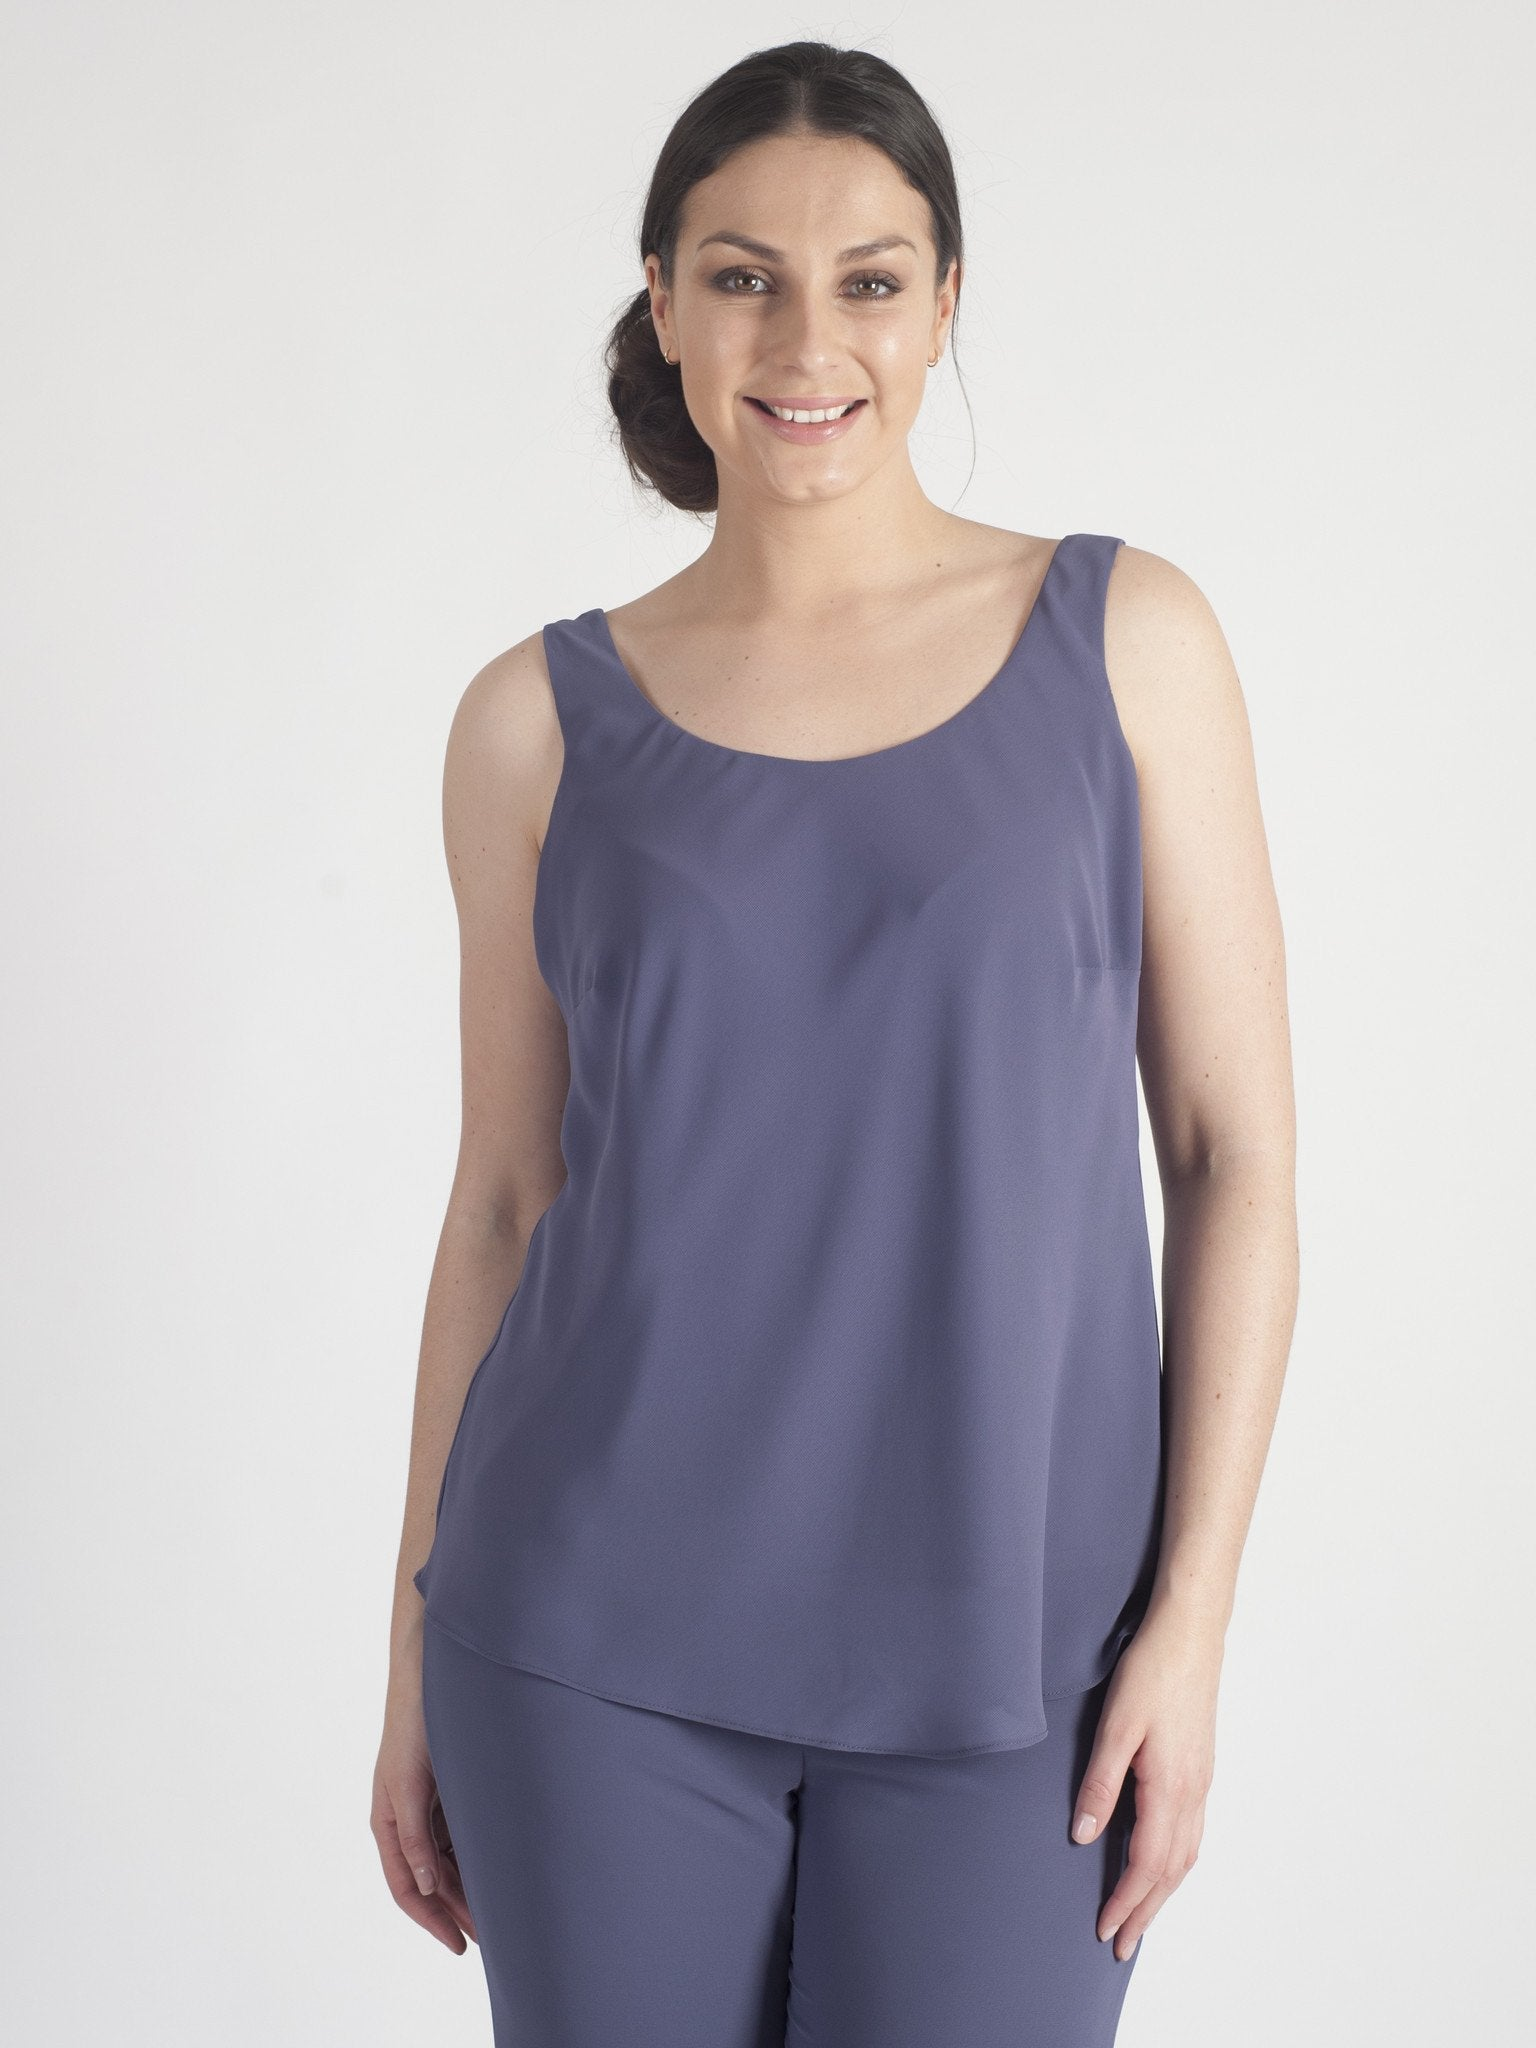 Chesca Direct Lavender Chiffon Camisole